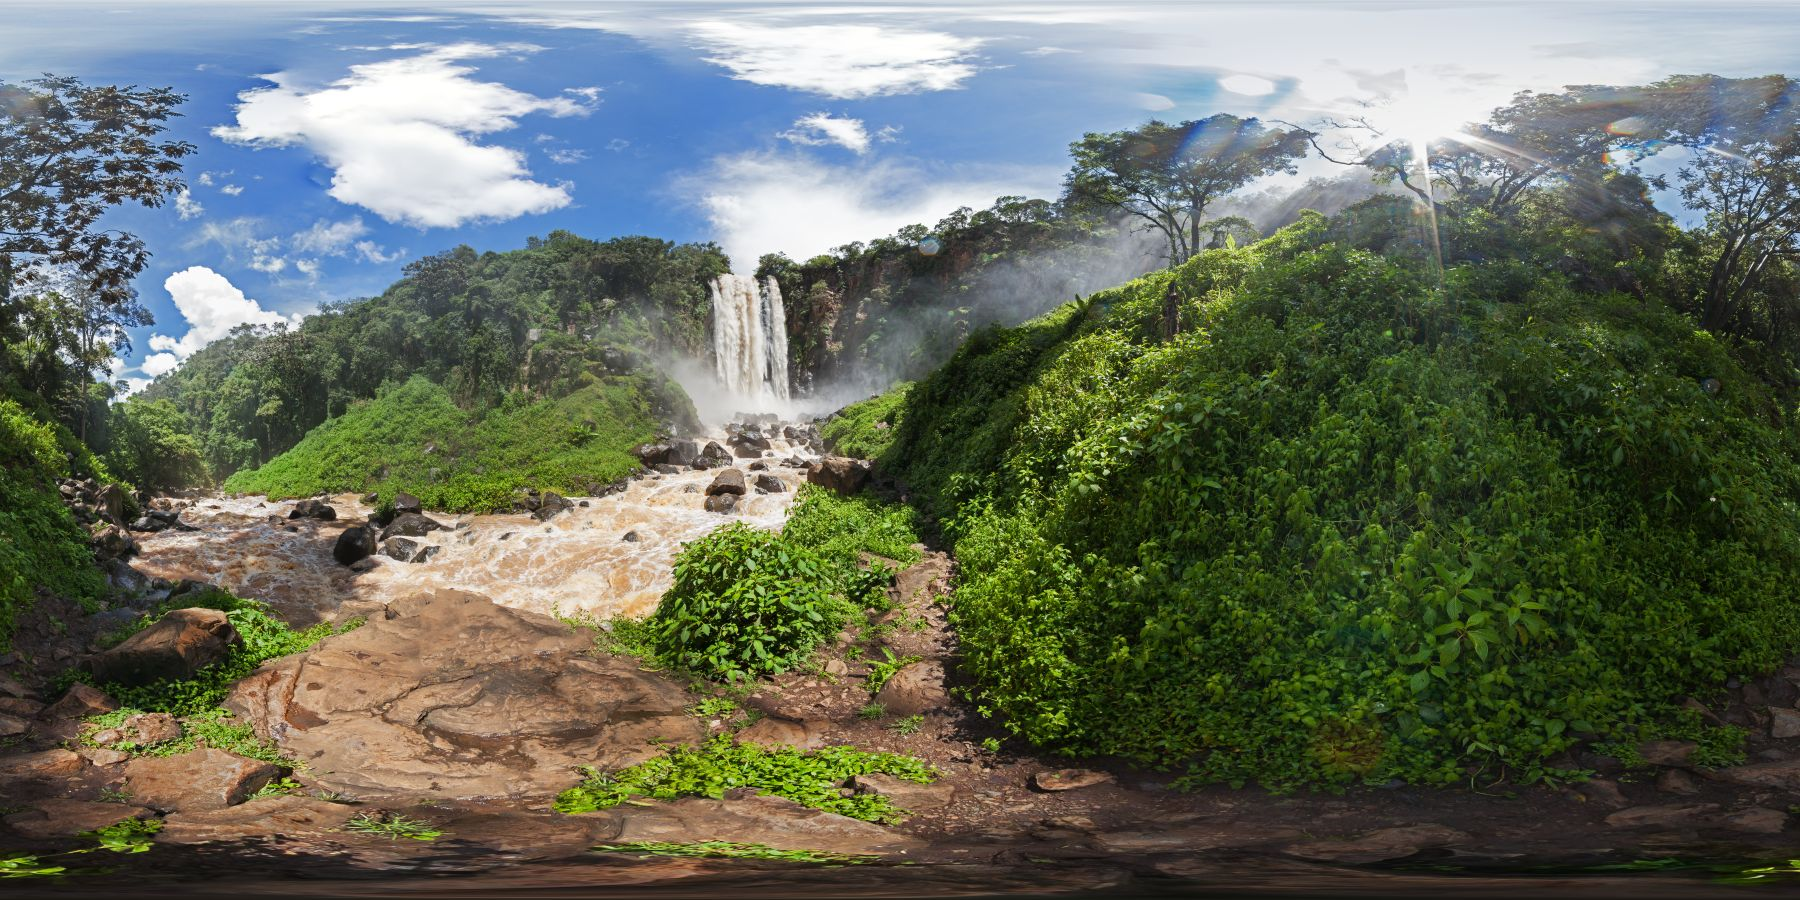 Panorama Kenia Thompson_Wasserfall 7